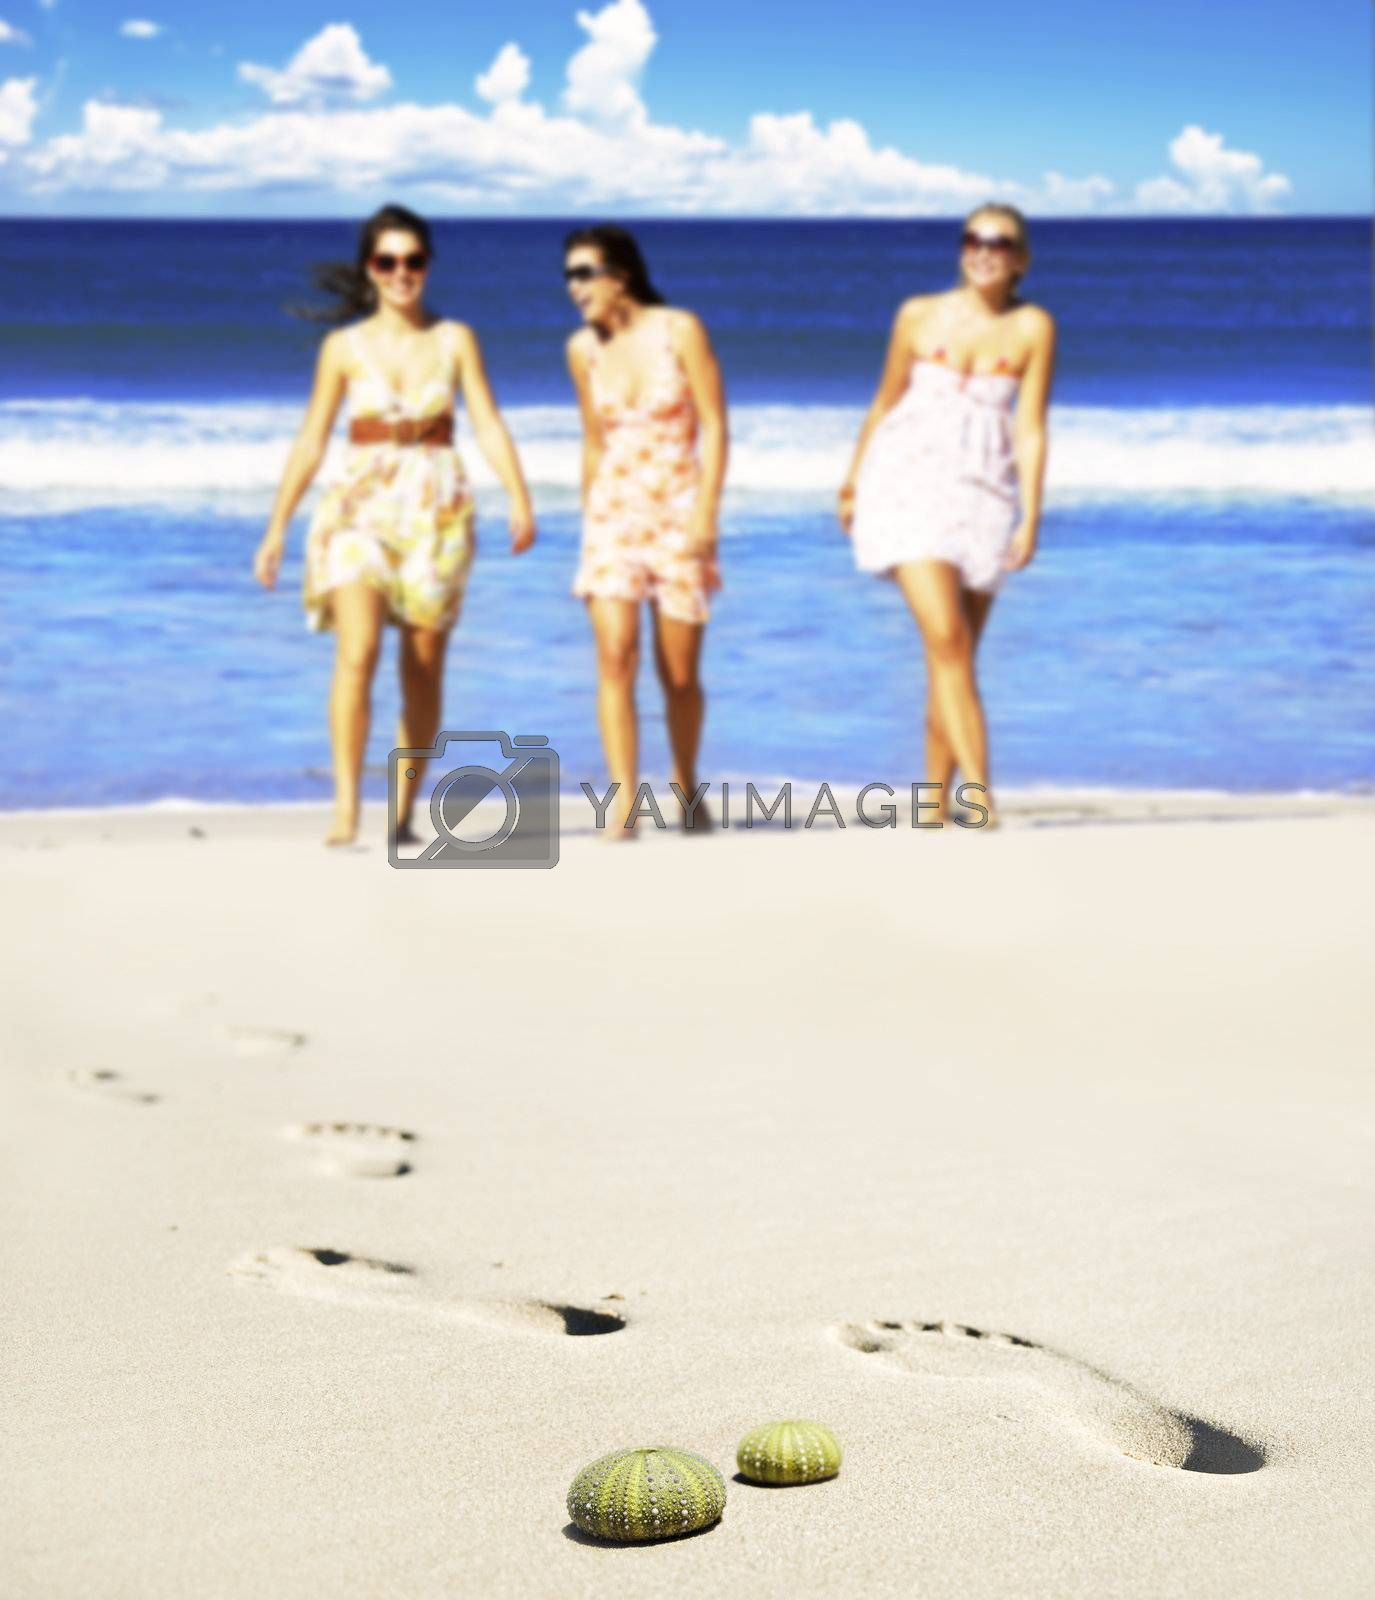 Sea urchin shells on the beach with three young women in the background